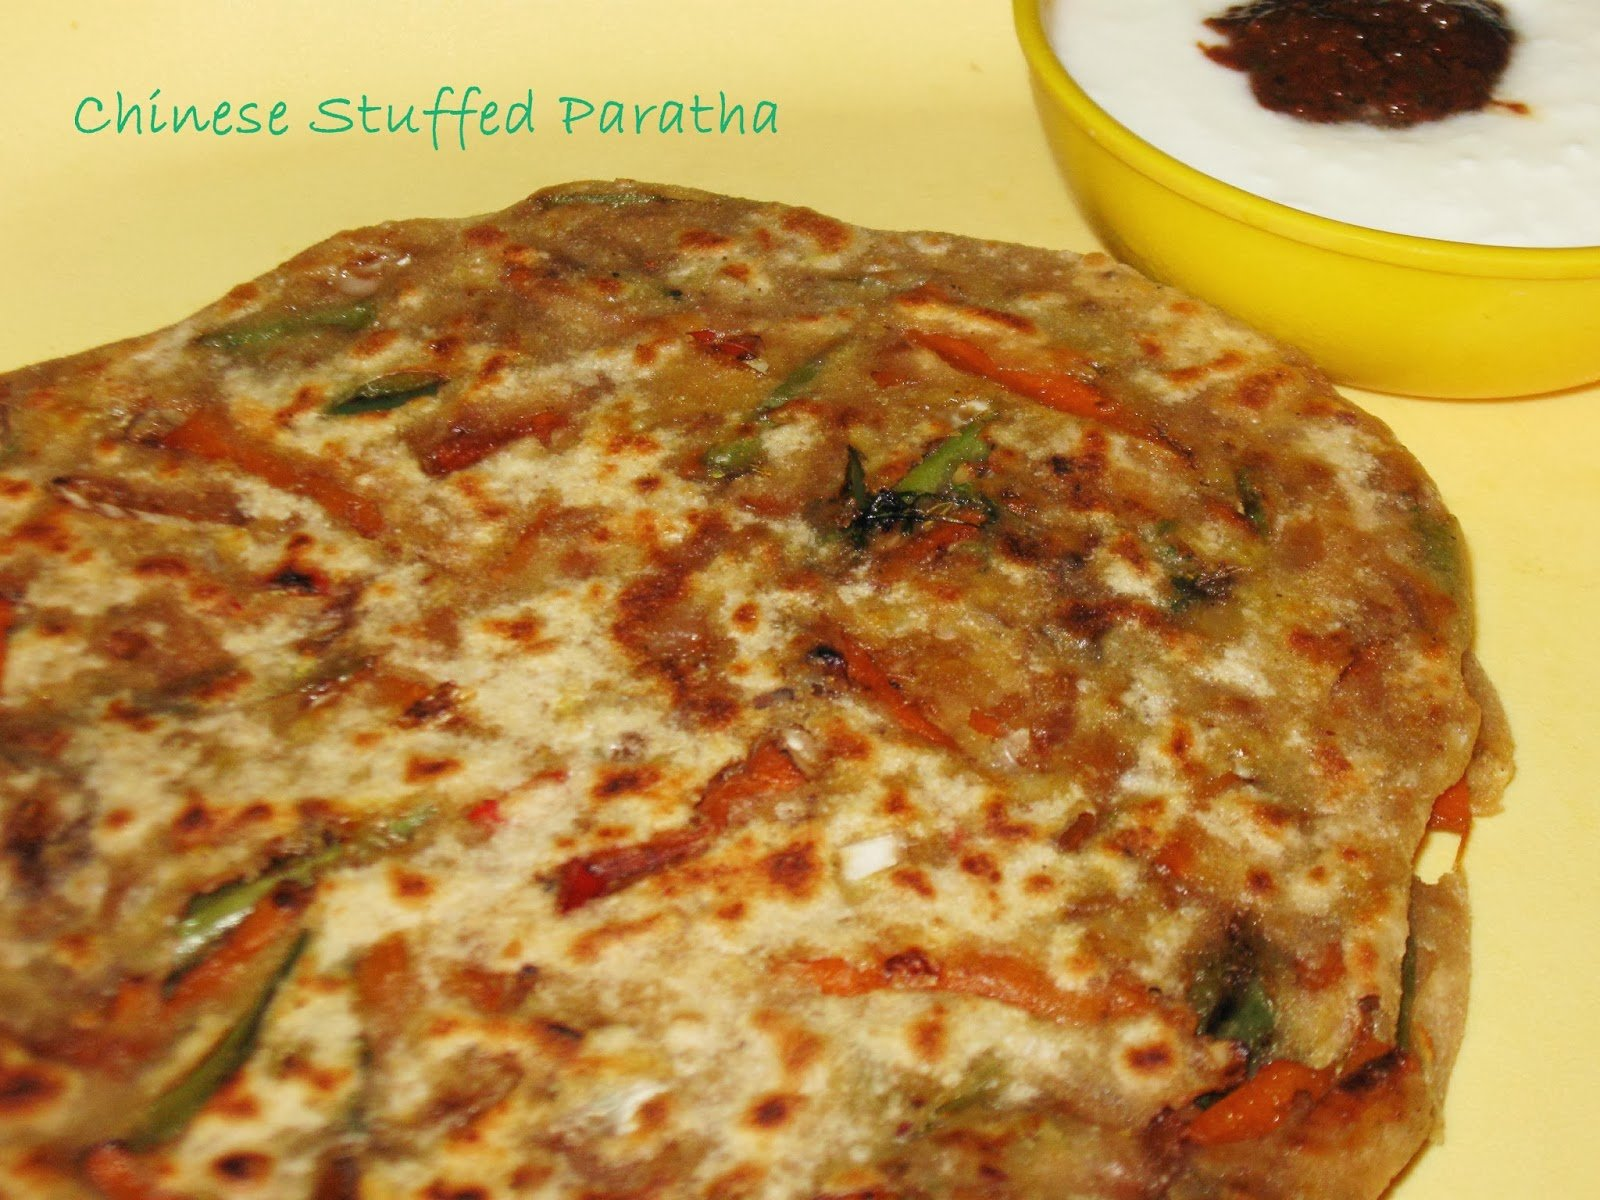 Chinese Stuffed Paratha